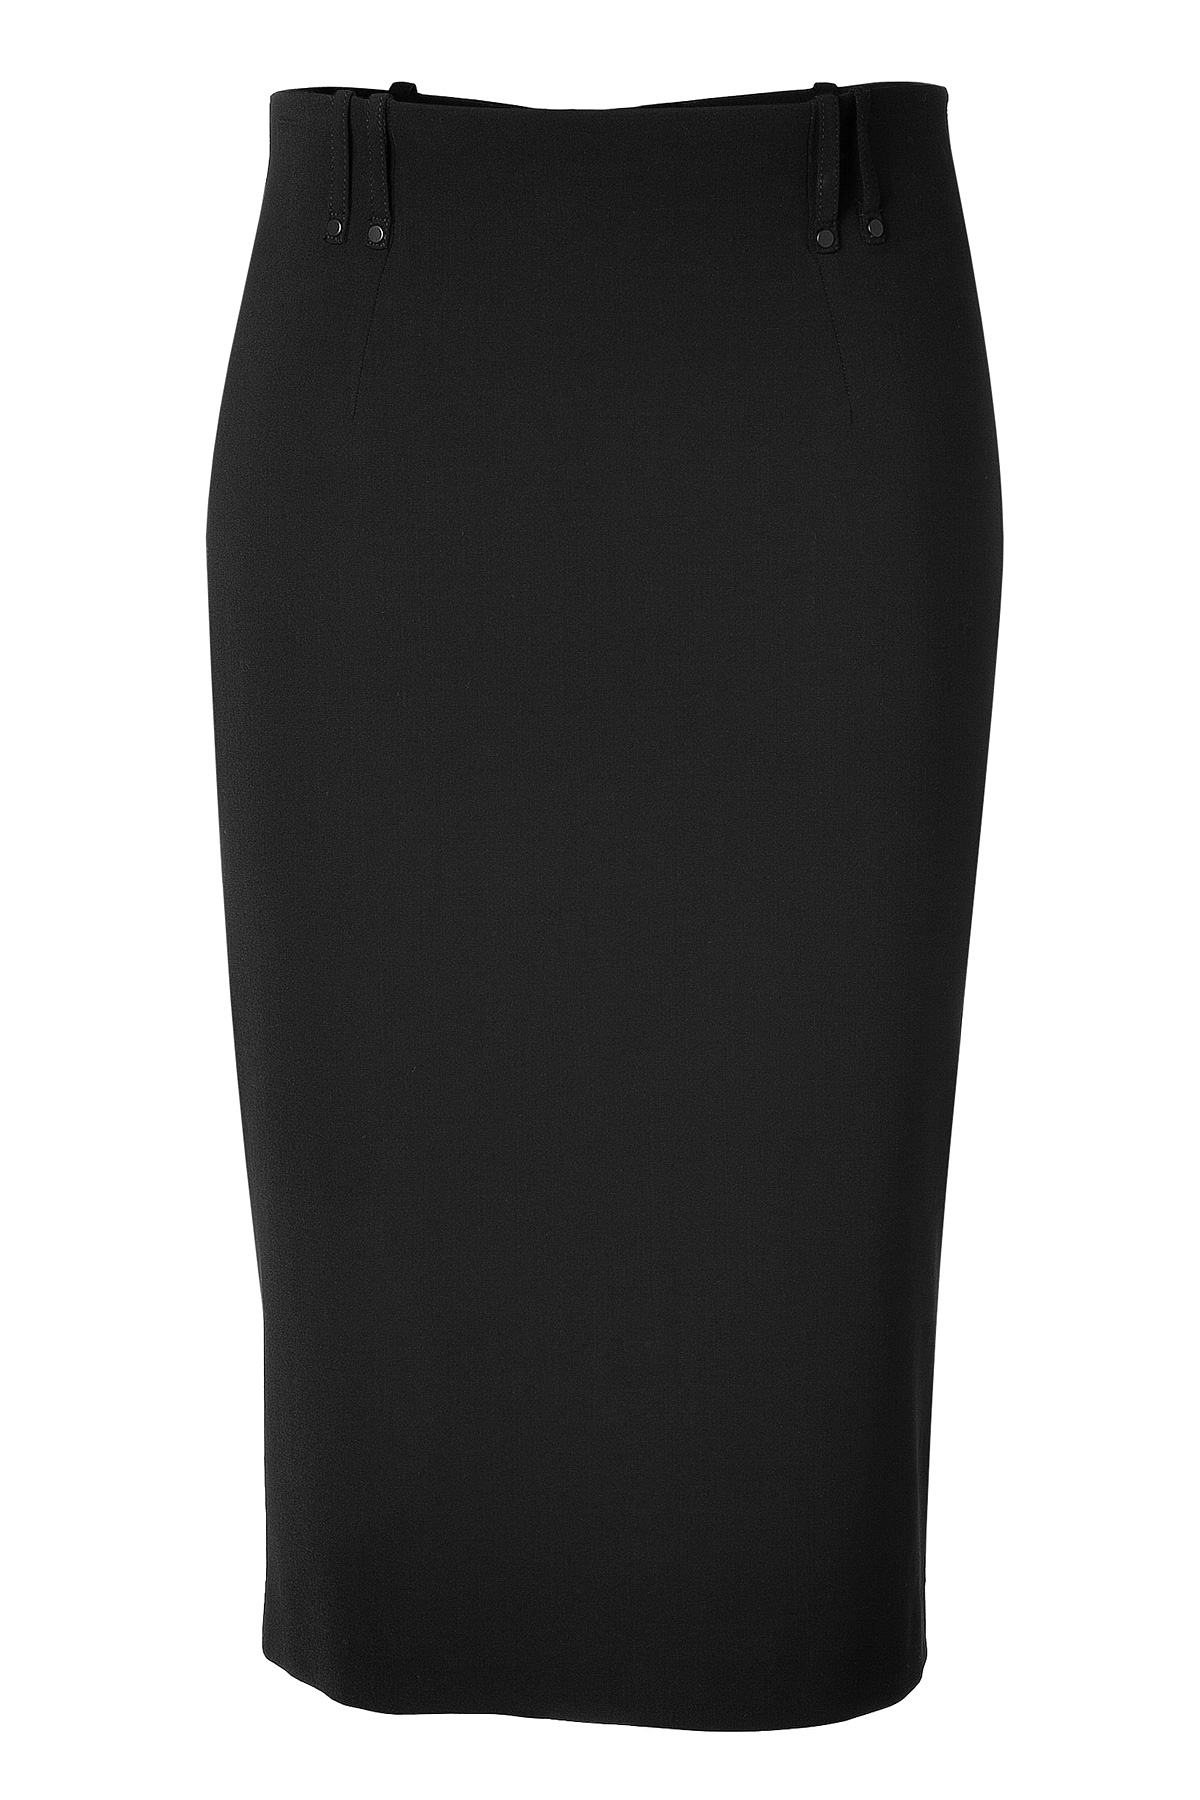 plein sud black pencil skirt with leather back trim in